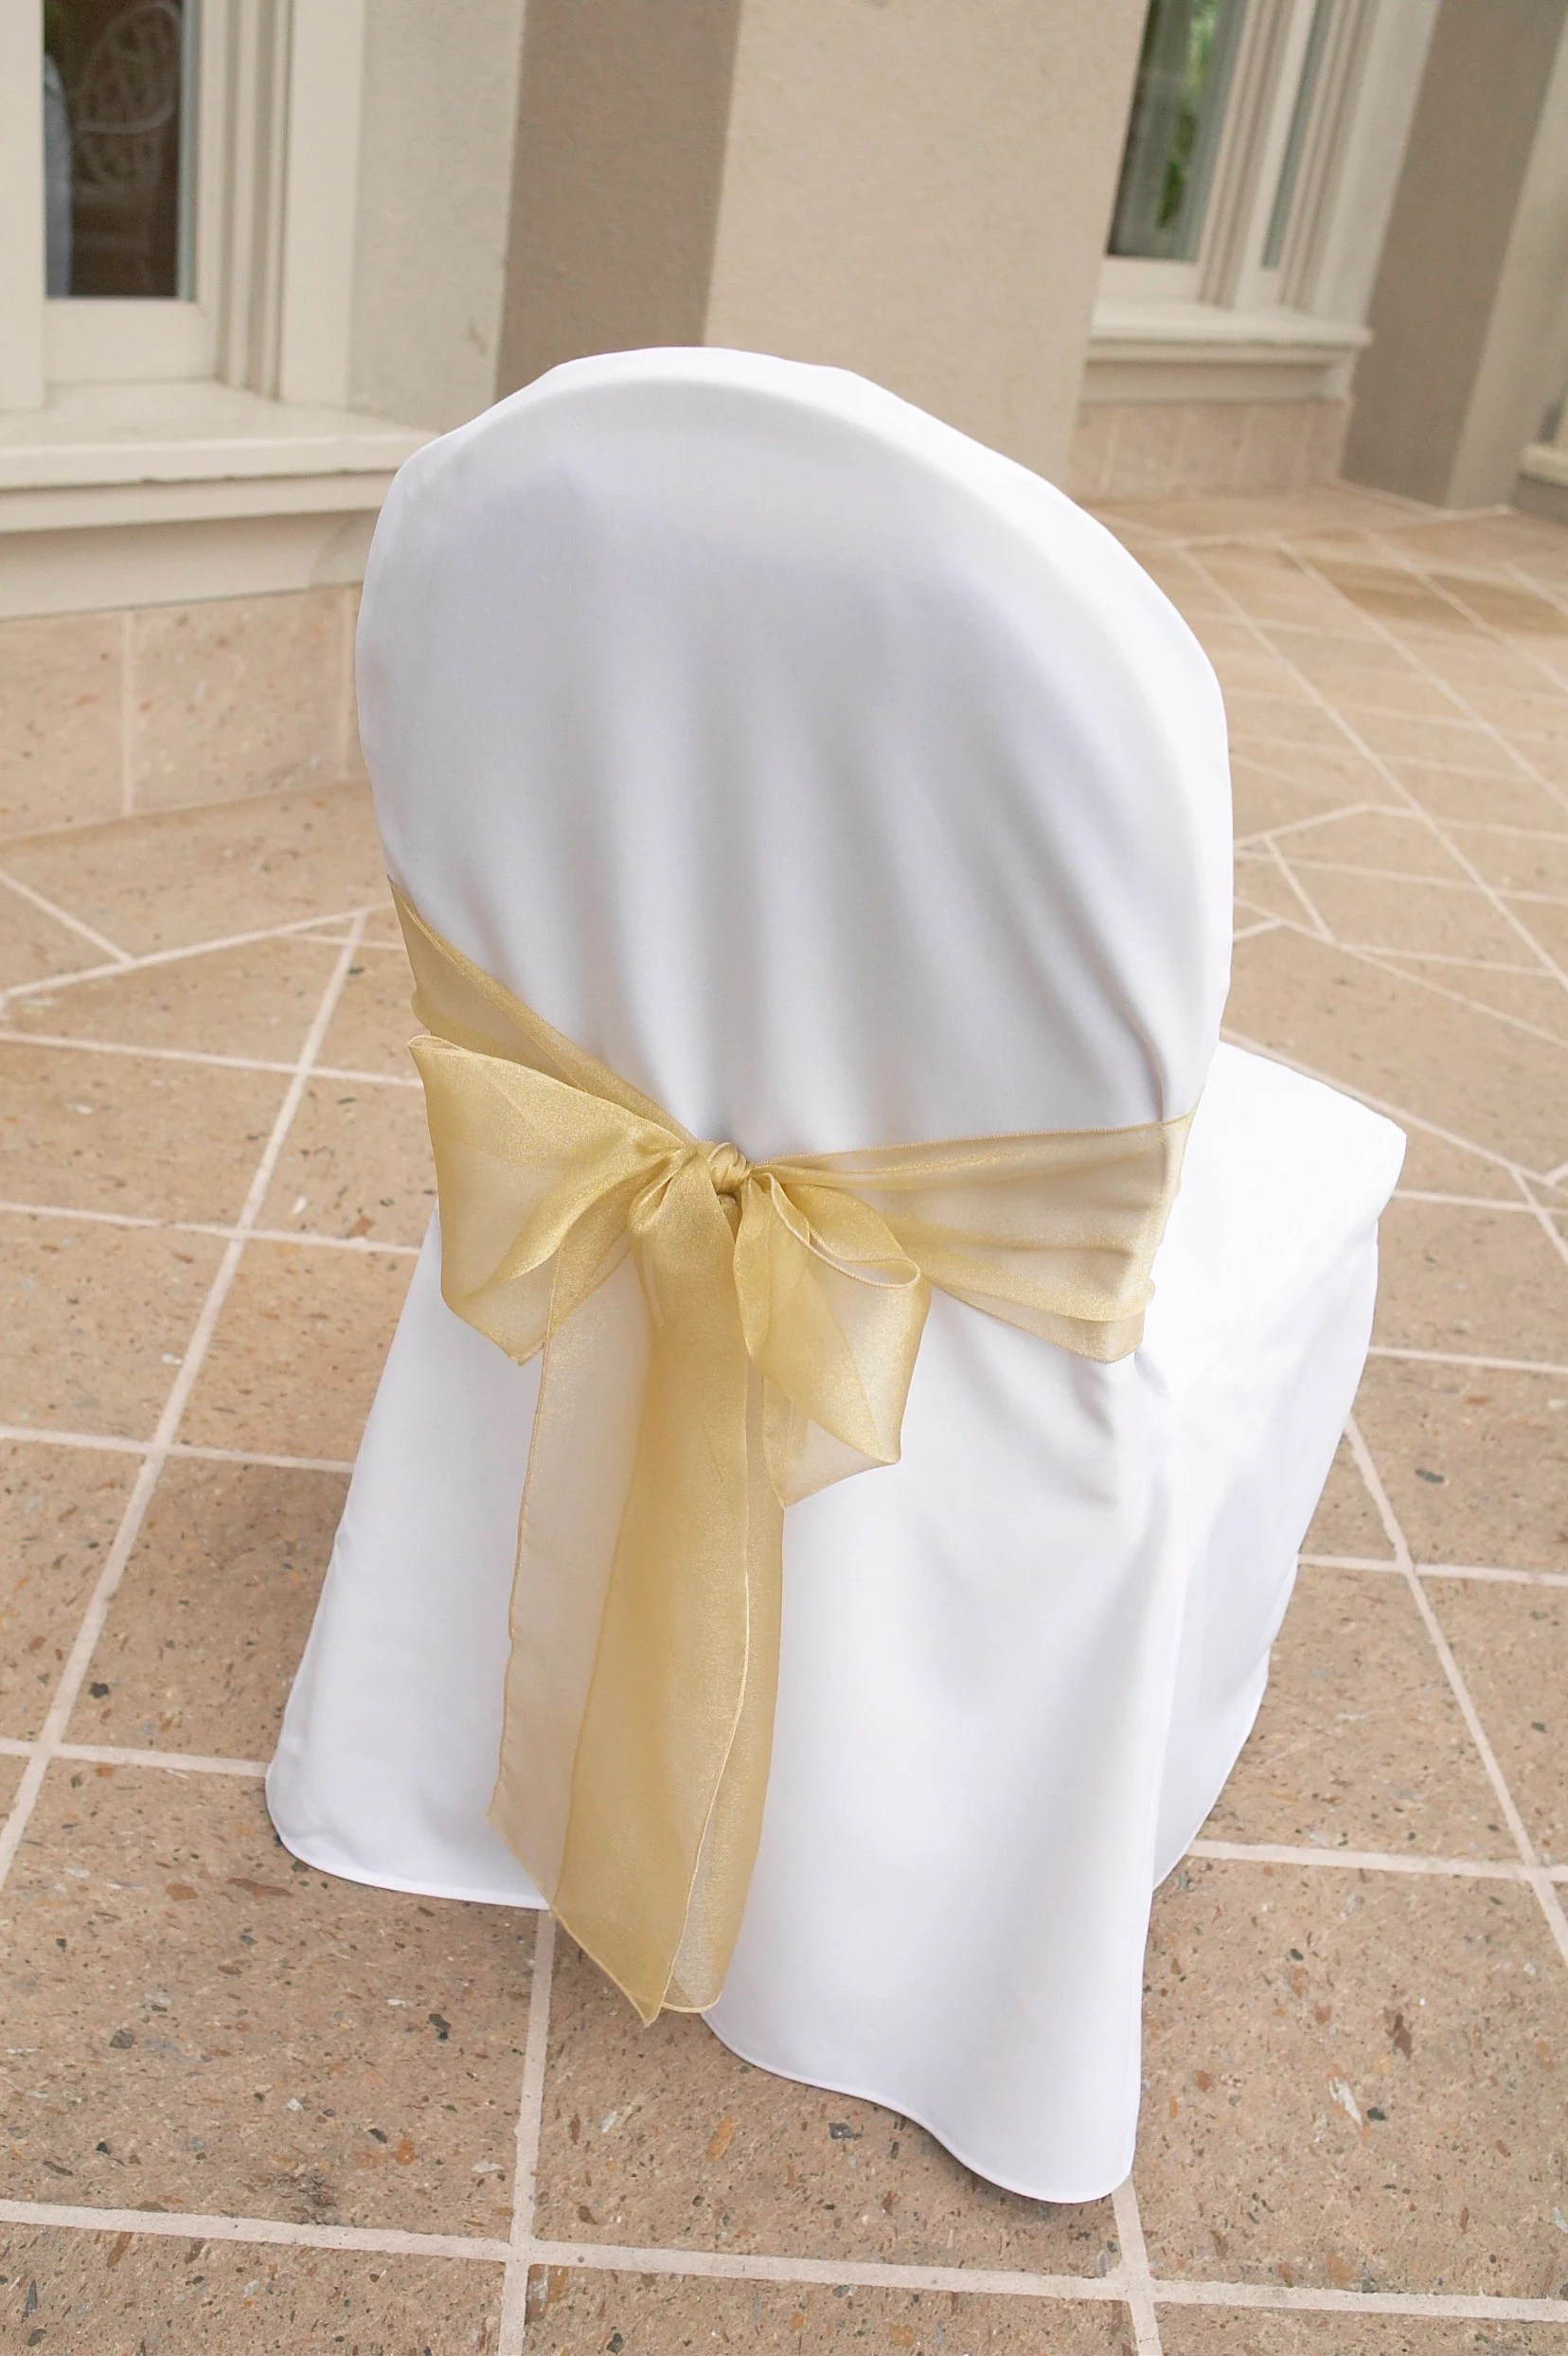 Cover For Chair 100 Ivory Chair Cover For Clearance Wedding Chair Cover Unique Chair Cover Banquet Chair Cover